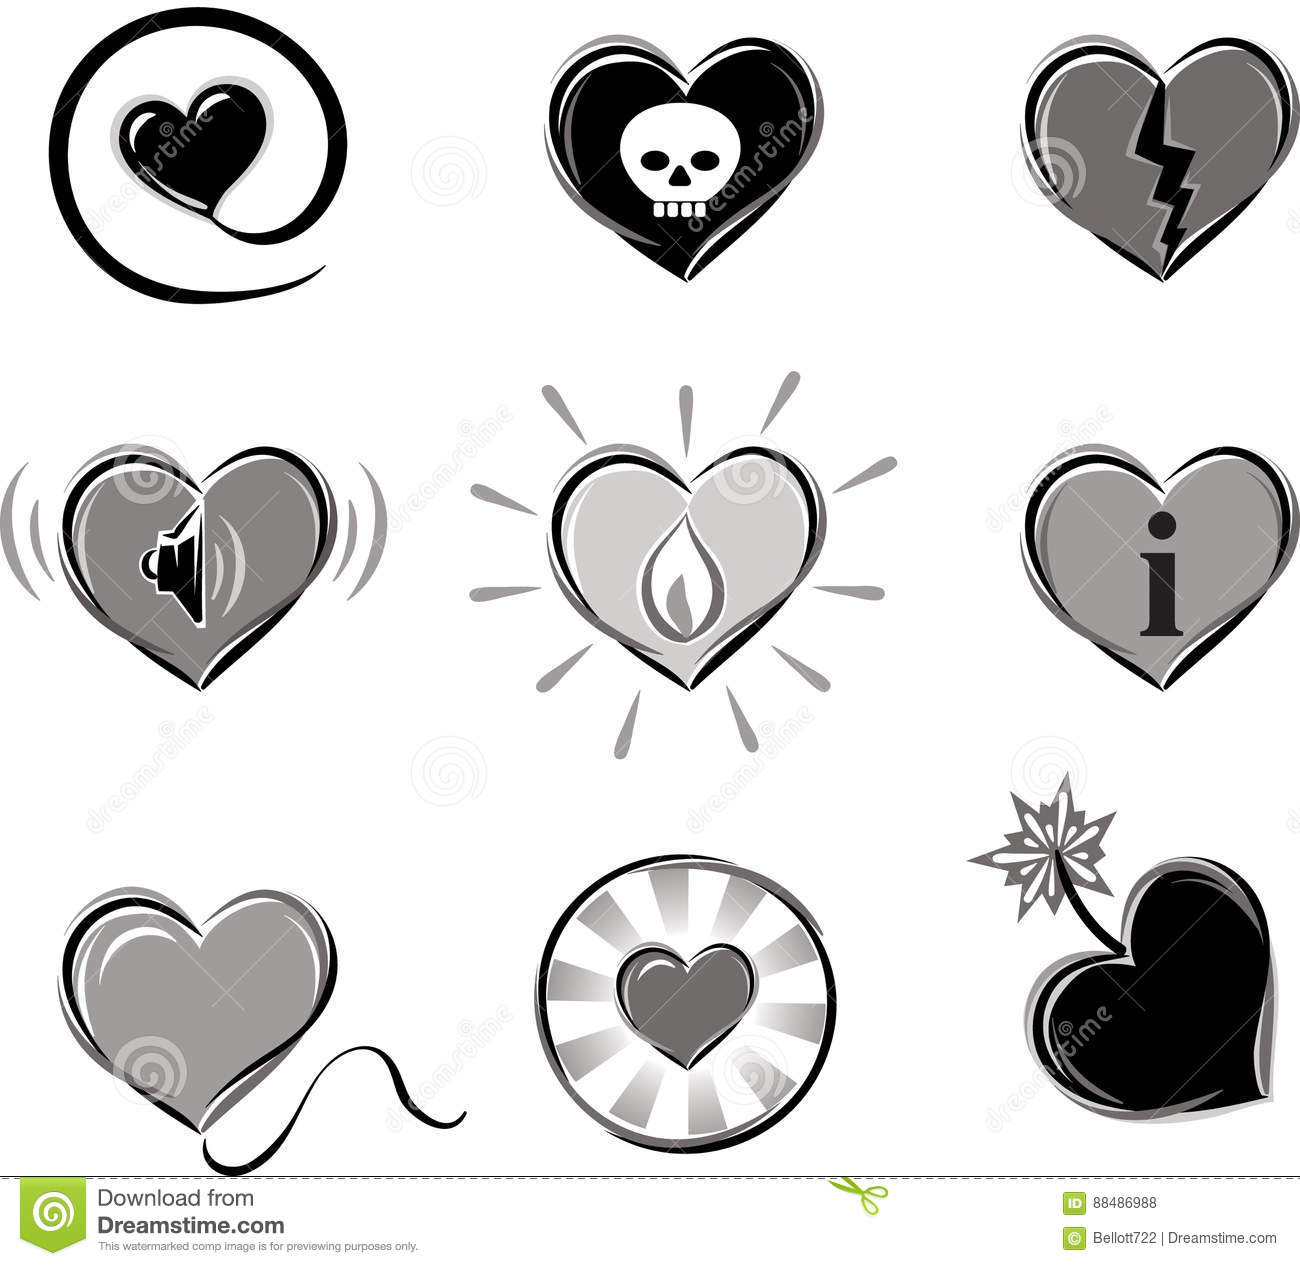 Heart Shaped Symbols Images Meaning Of This Symbol